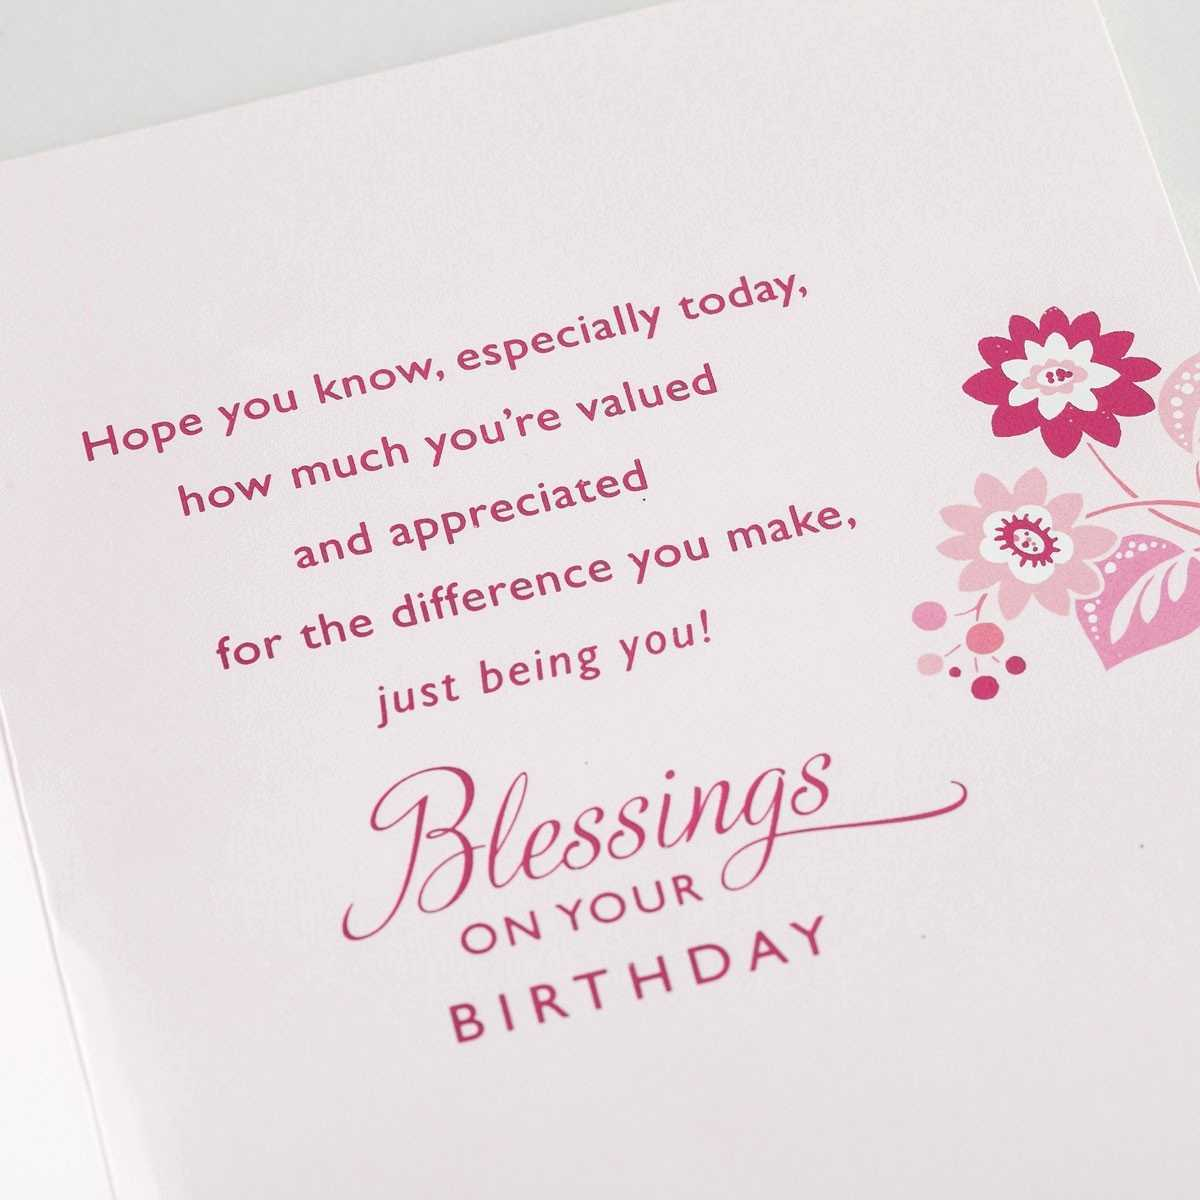 pastor birthday card ; birthday-wishes-for-pastor-elegant-birthday-pastor-s-wife-just-being-you-1-premium-card-of-birthday-wishes-for-pastor